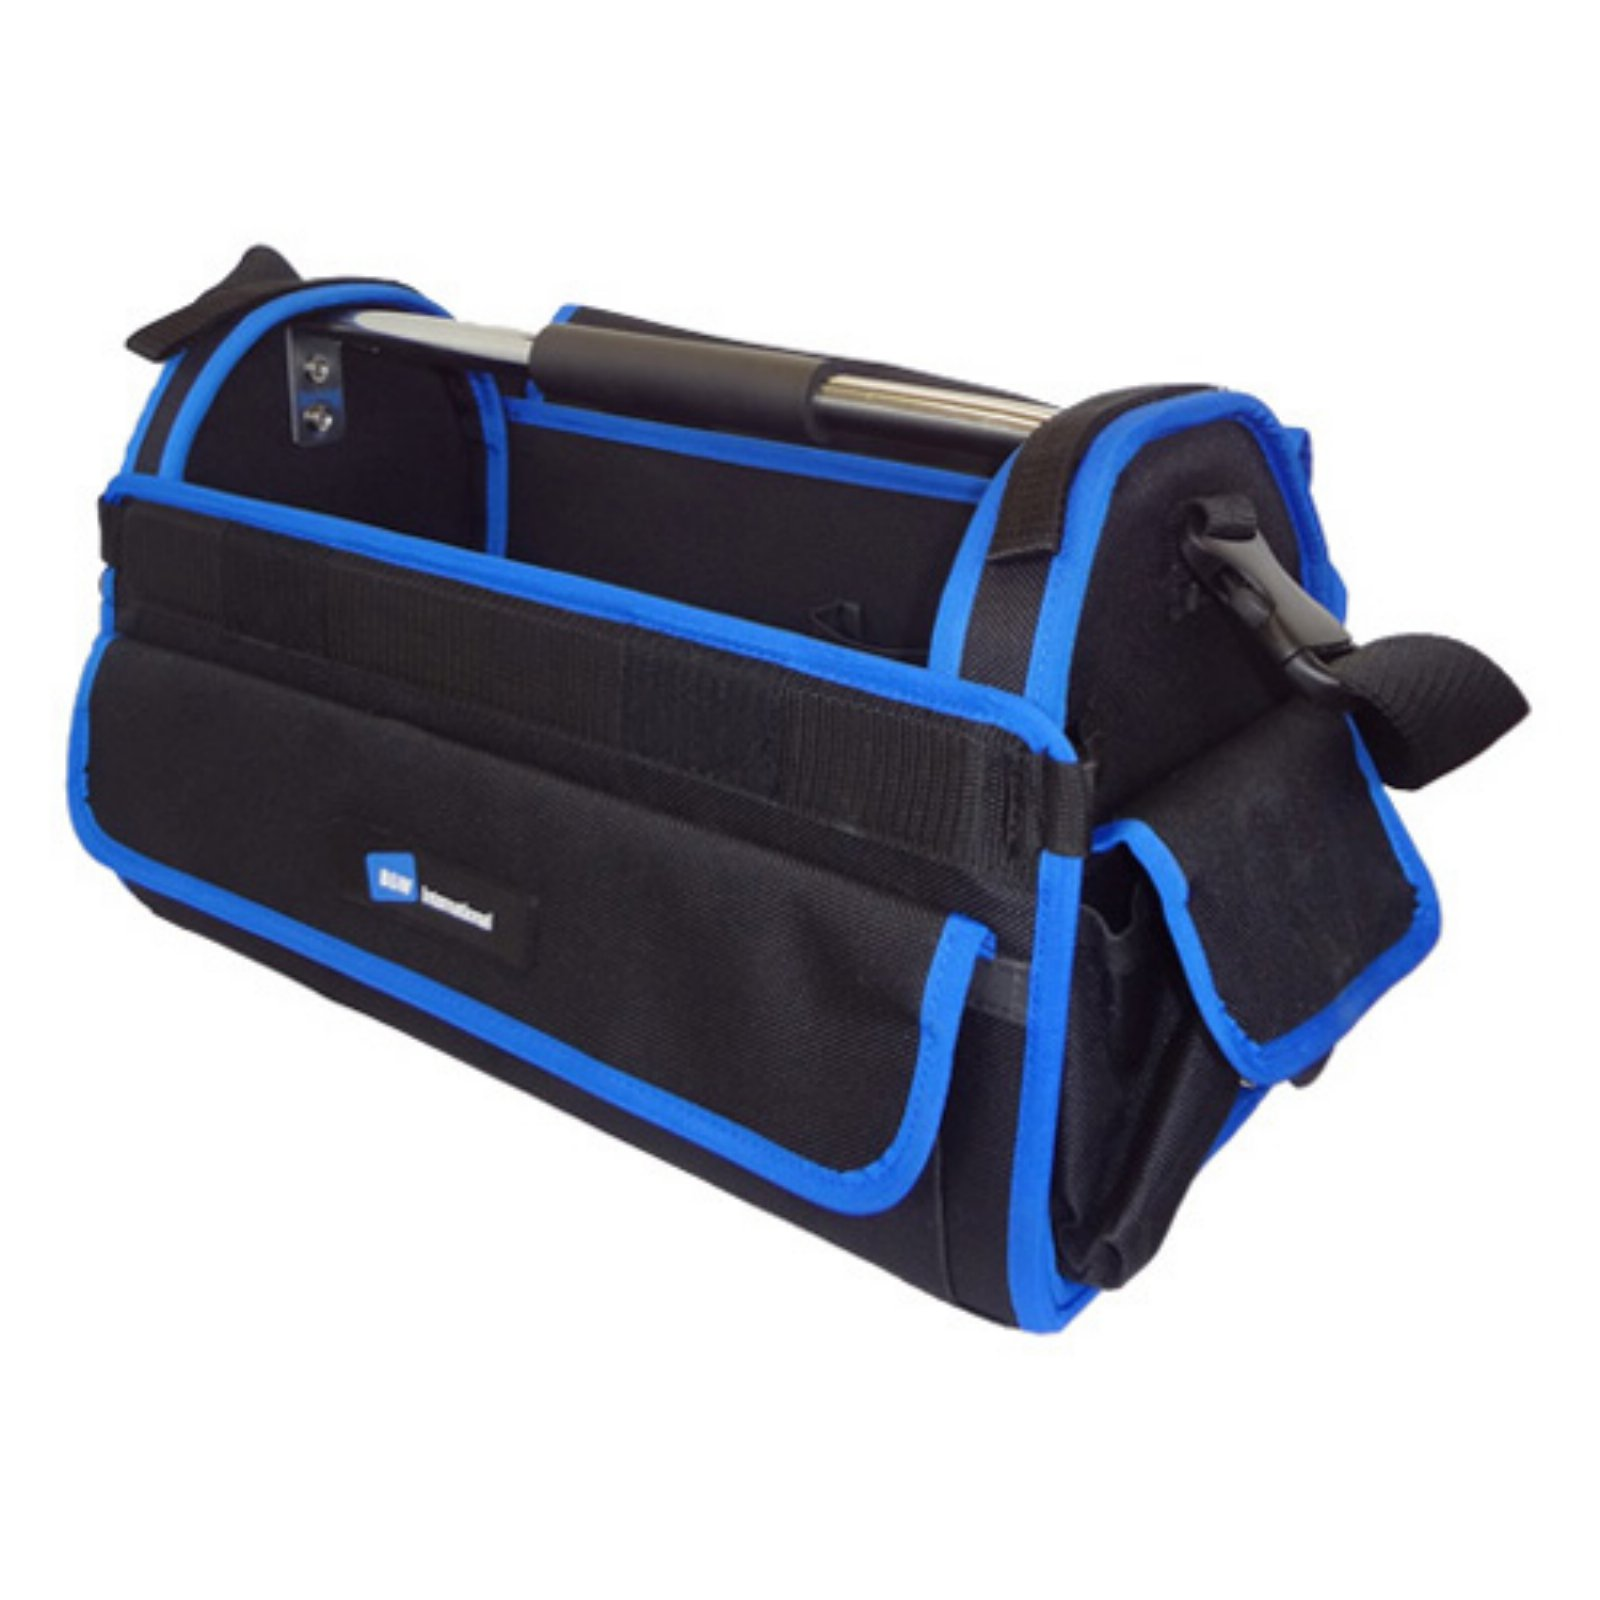 B and W Work Tech Tool Bag by Overstock